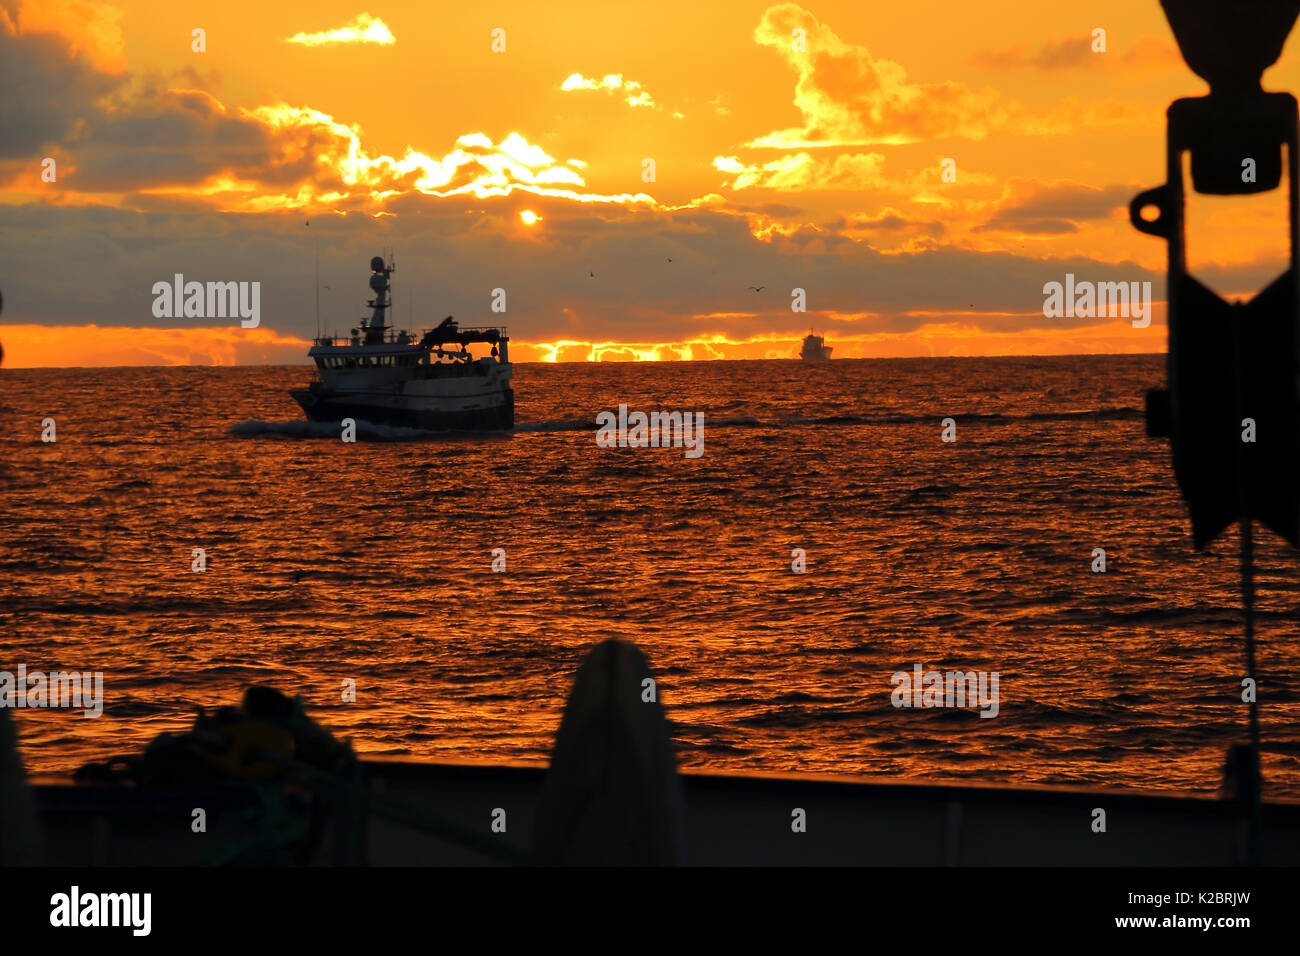 View from a fishing vessel of the golden reflection as the sun rises on the North Sea, October 2014.  All non-editorial uses must be cleared individually. - Stock Image